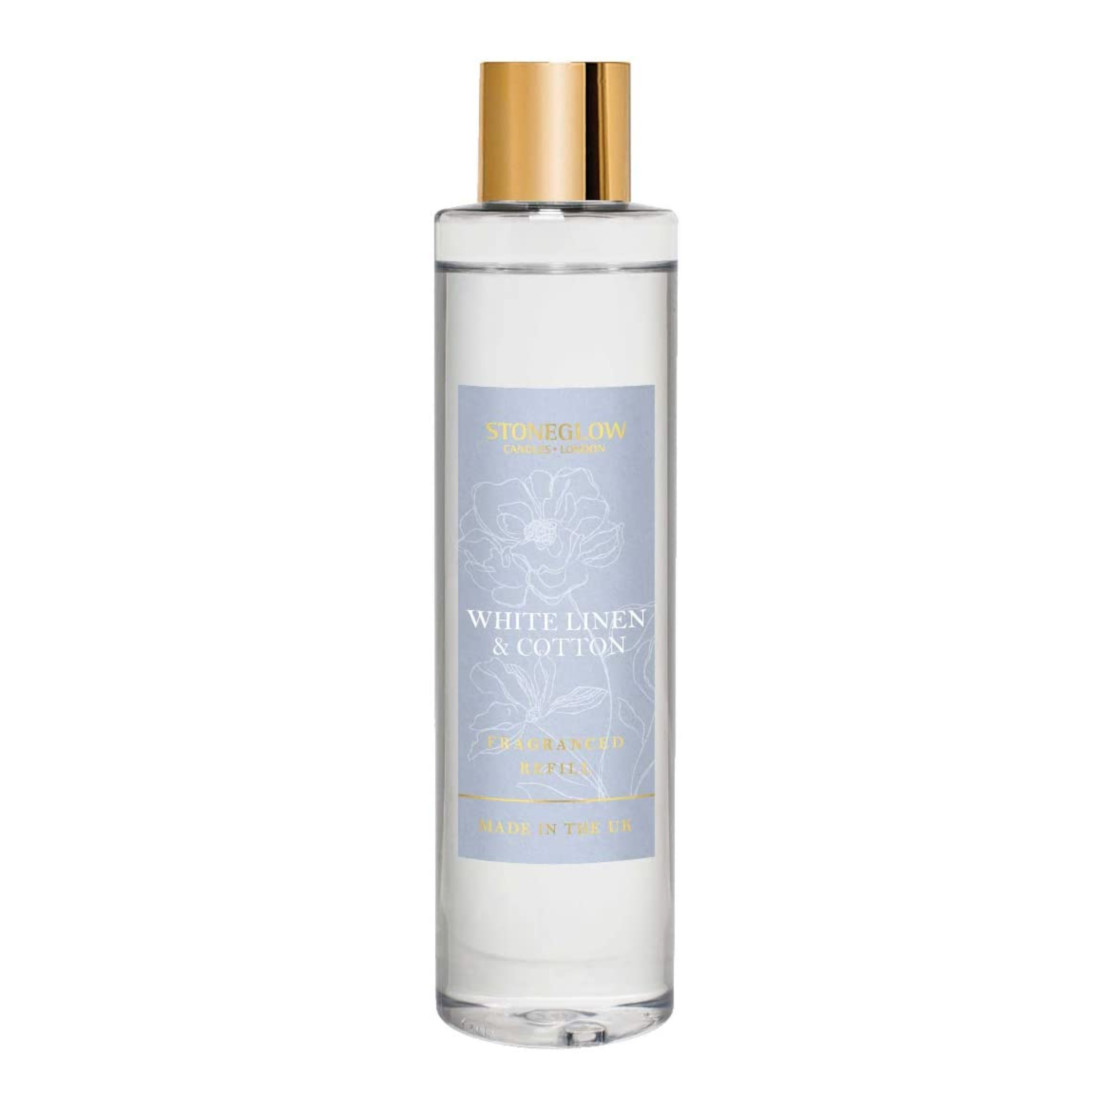 Stoneglow Day Flower White Linen & Cotton Reed Diffuser Refill